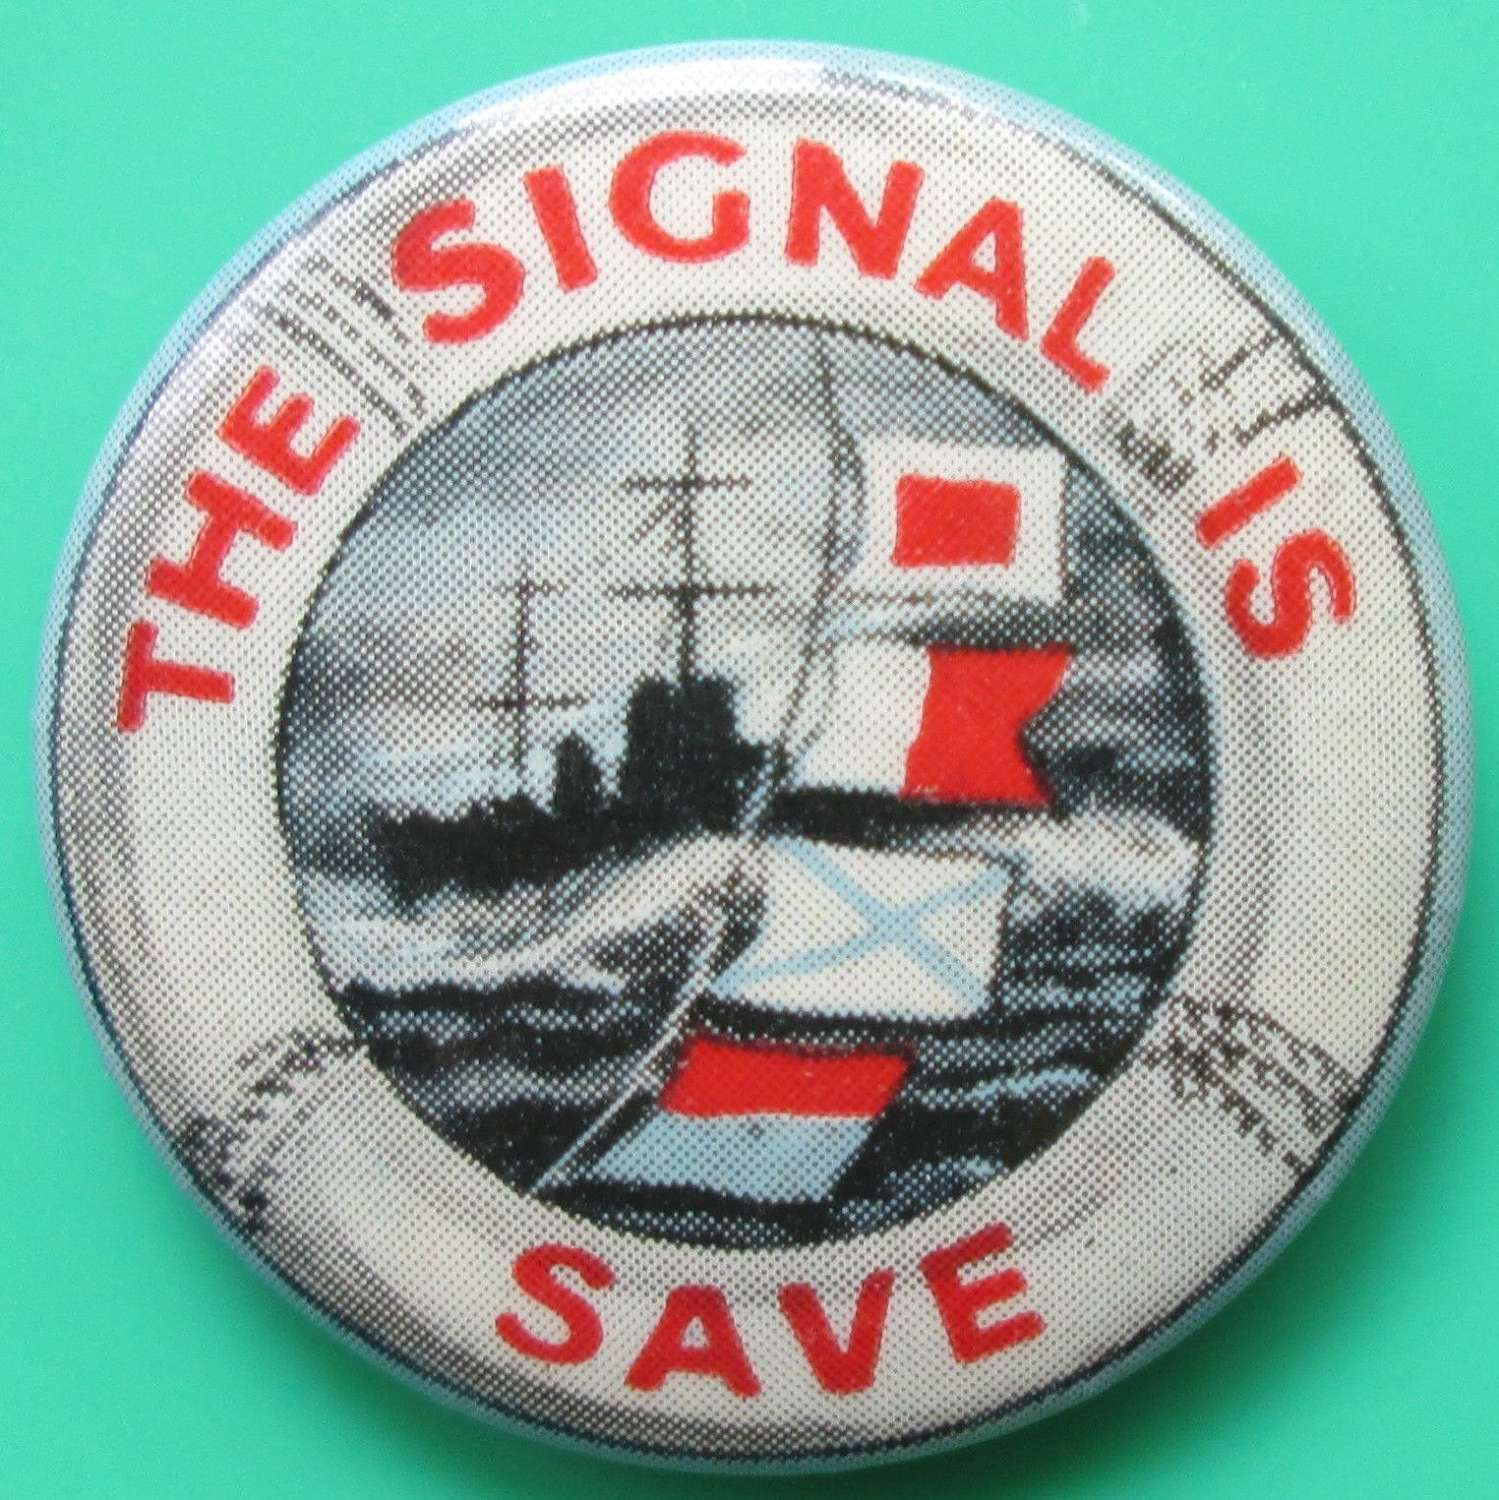 A WWII RN FUNDRAISING BADGE THE SIGNAL IS SAVE